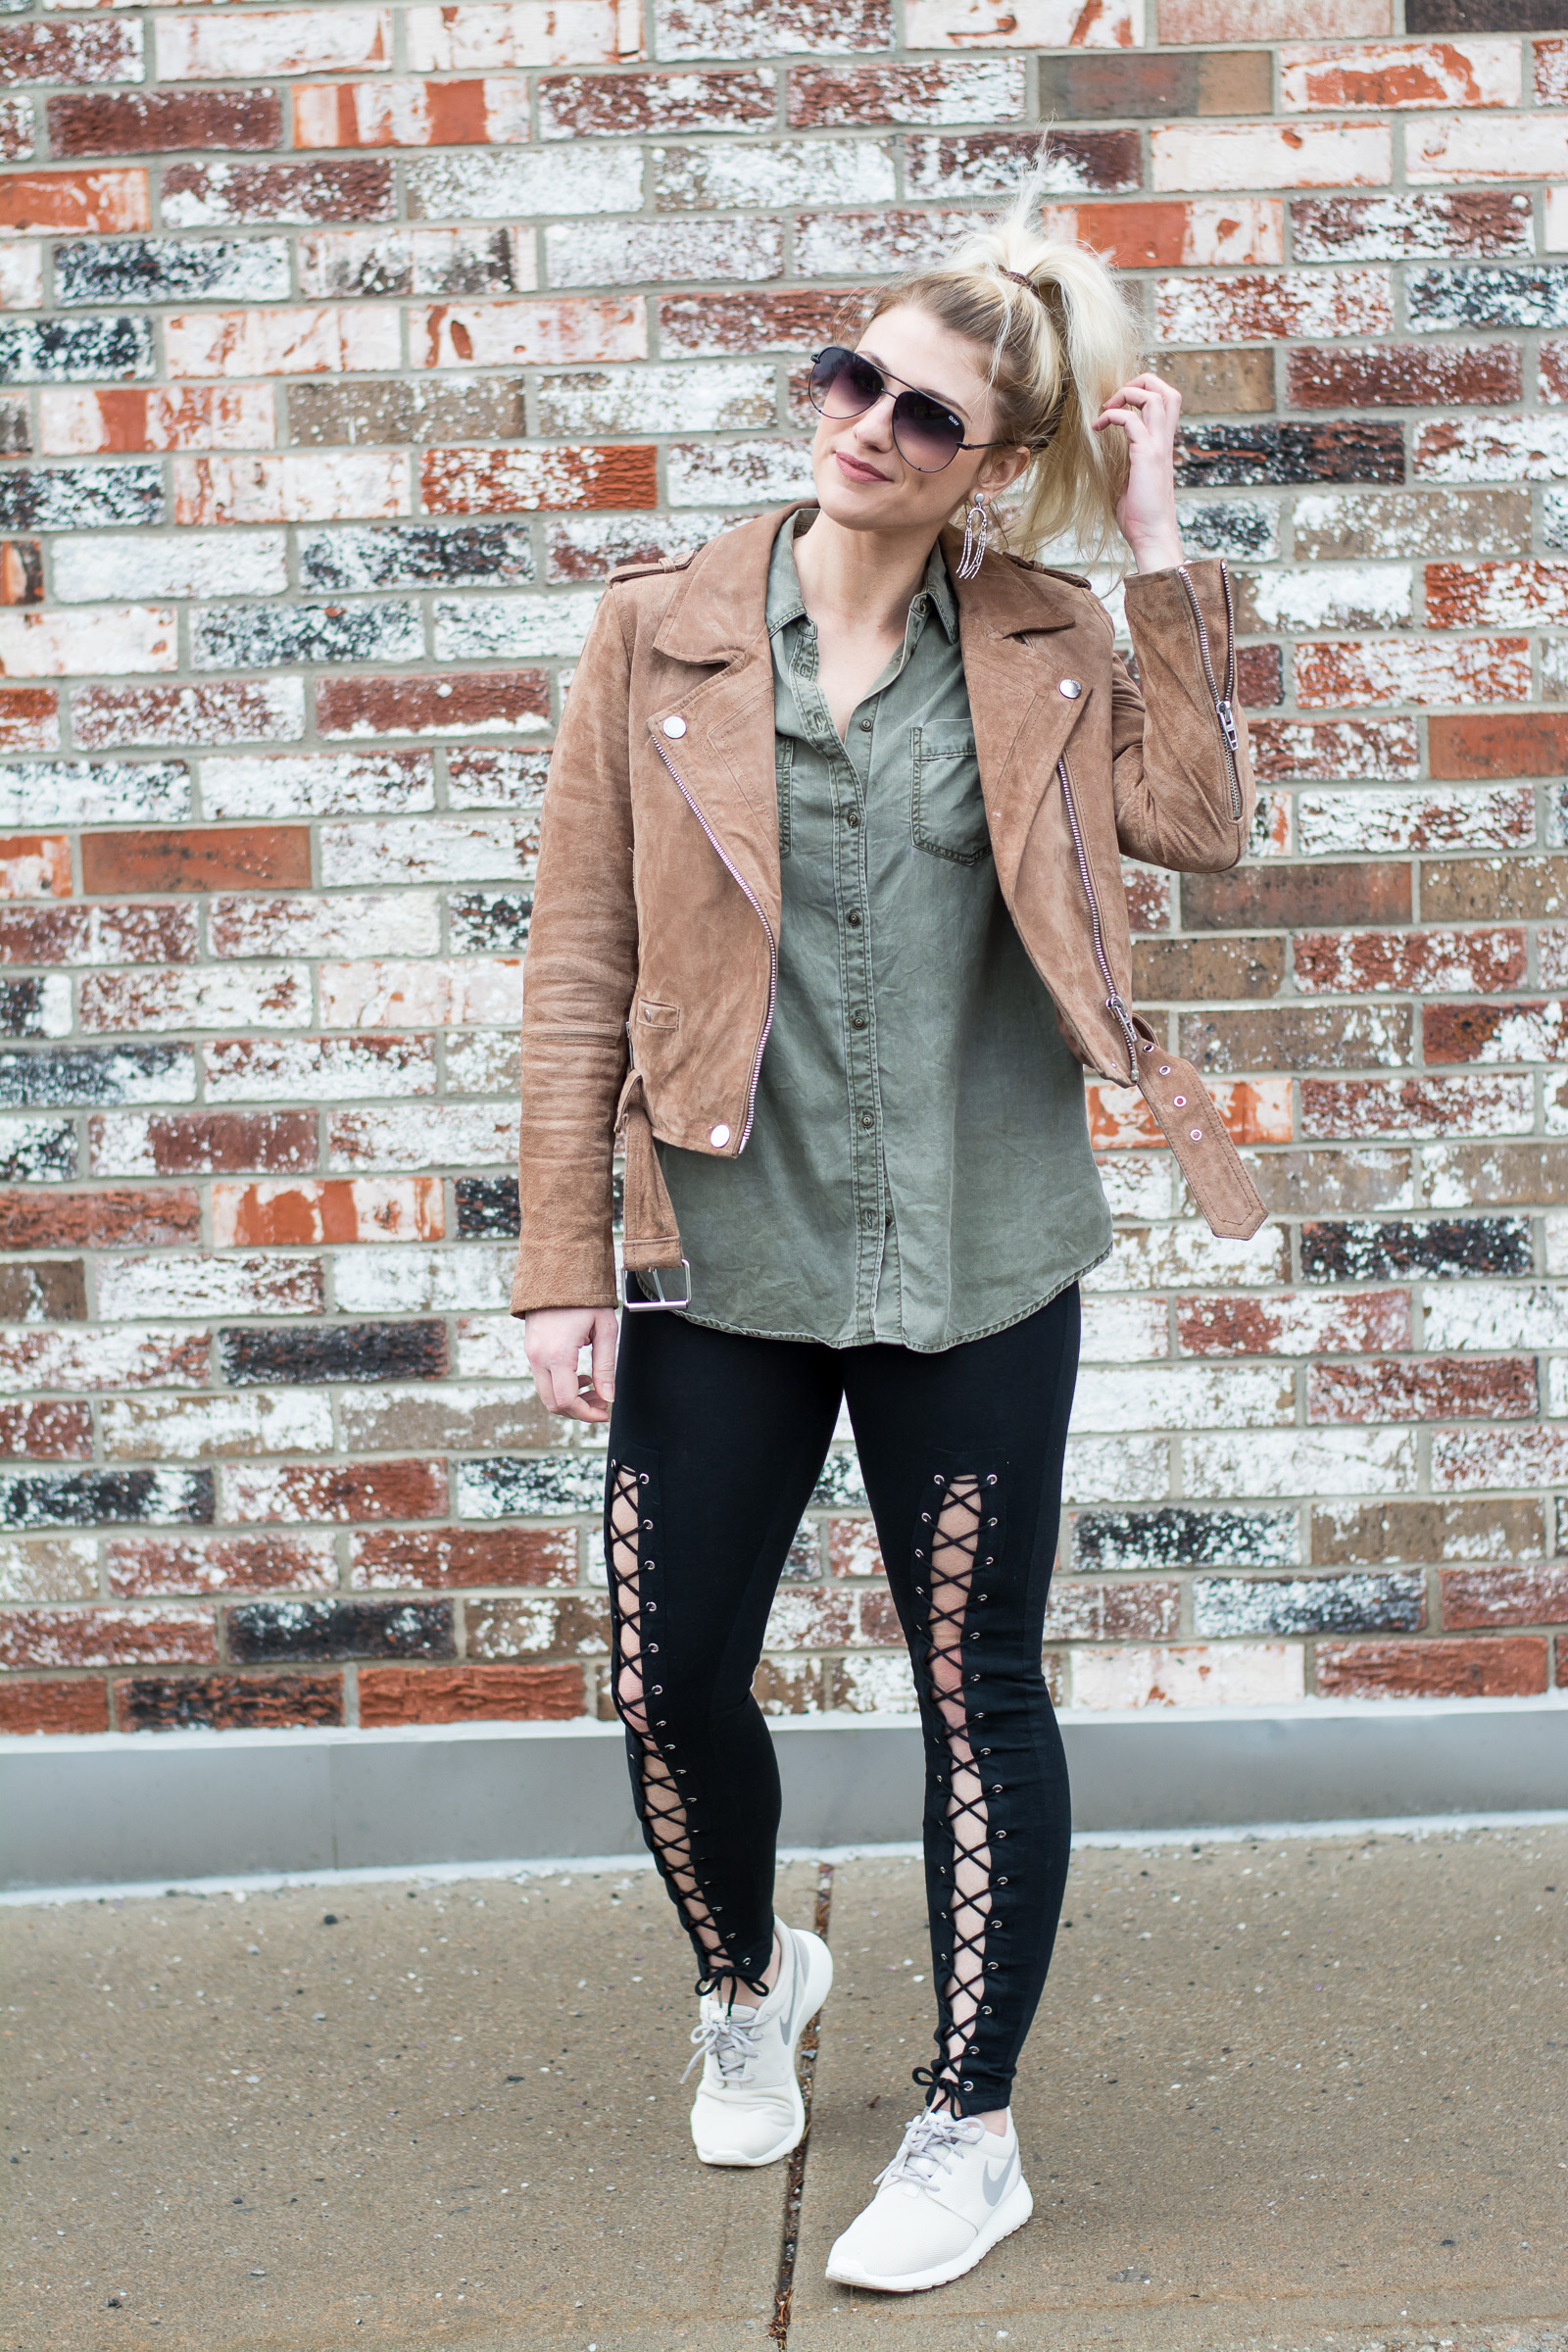 Fave Suede Jacket with Lace-up Leggings. | Ashley from LSR